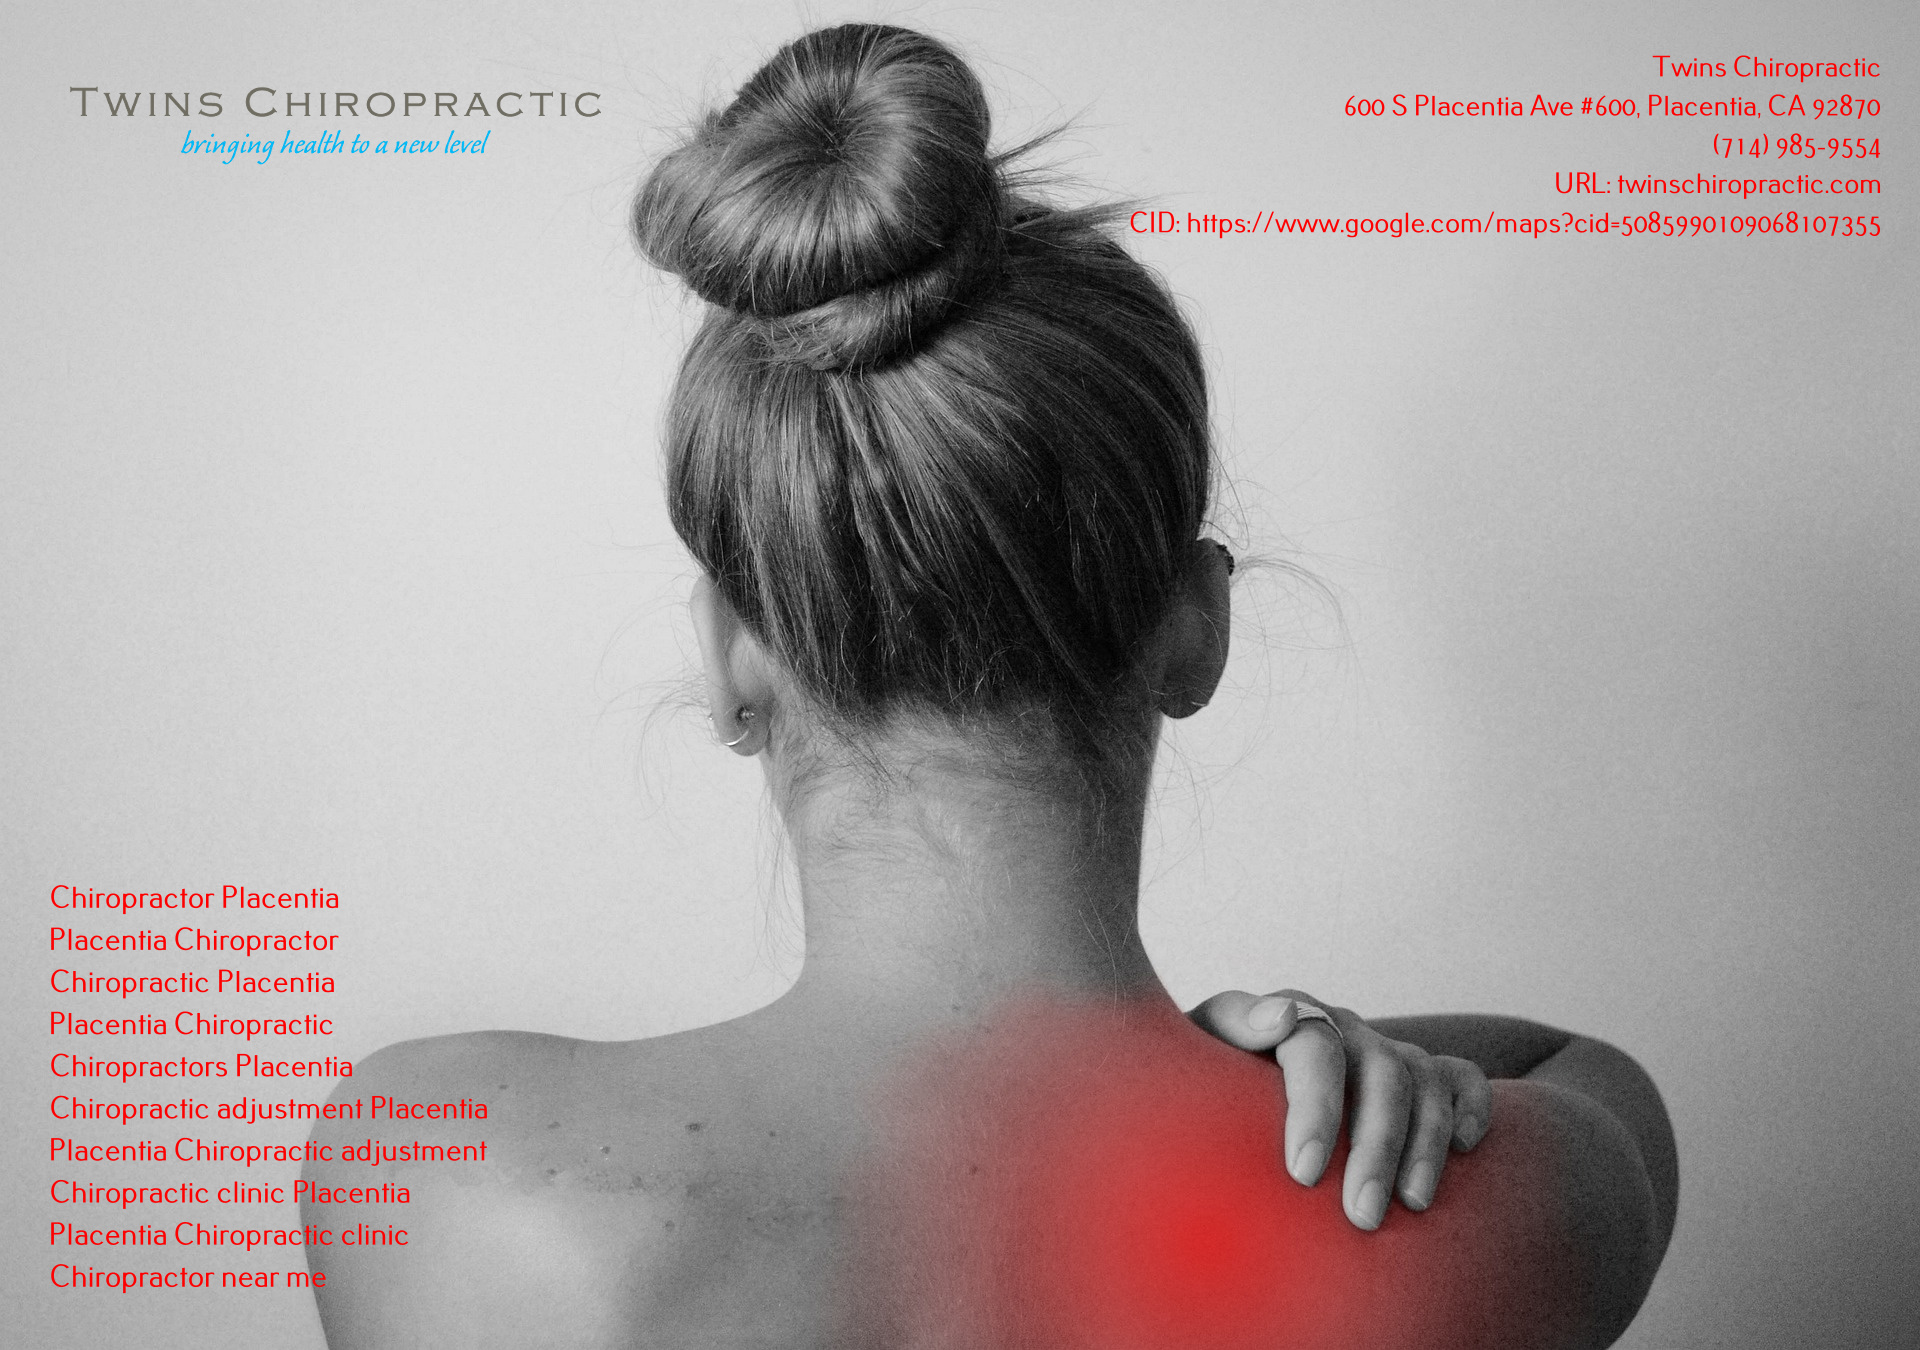 Twins Chiropractic (Placentia) - 1